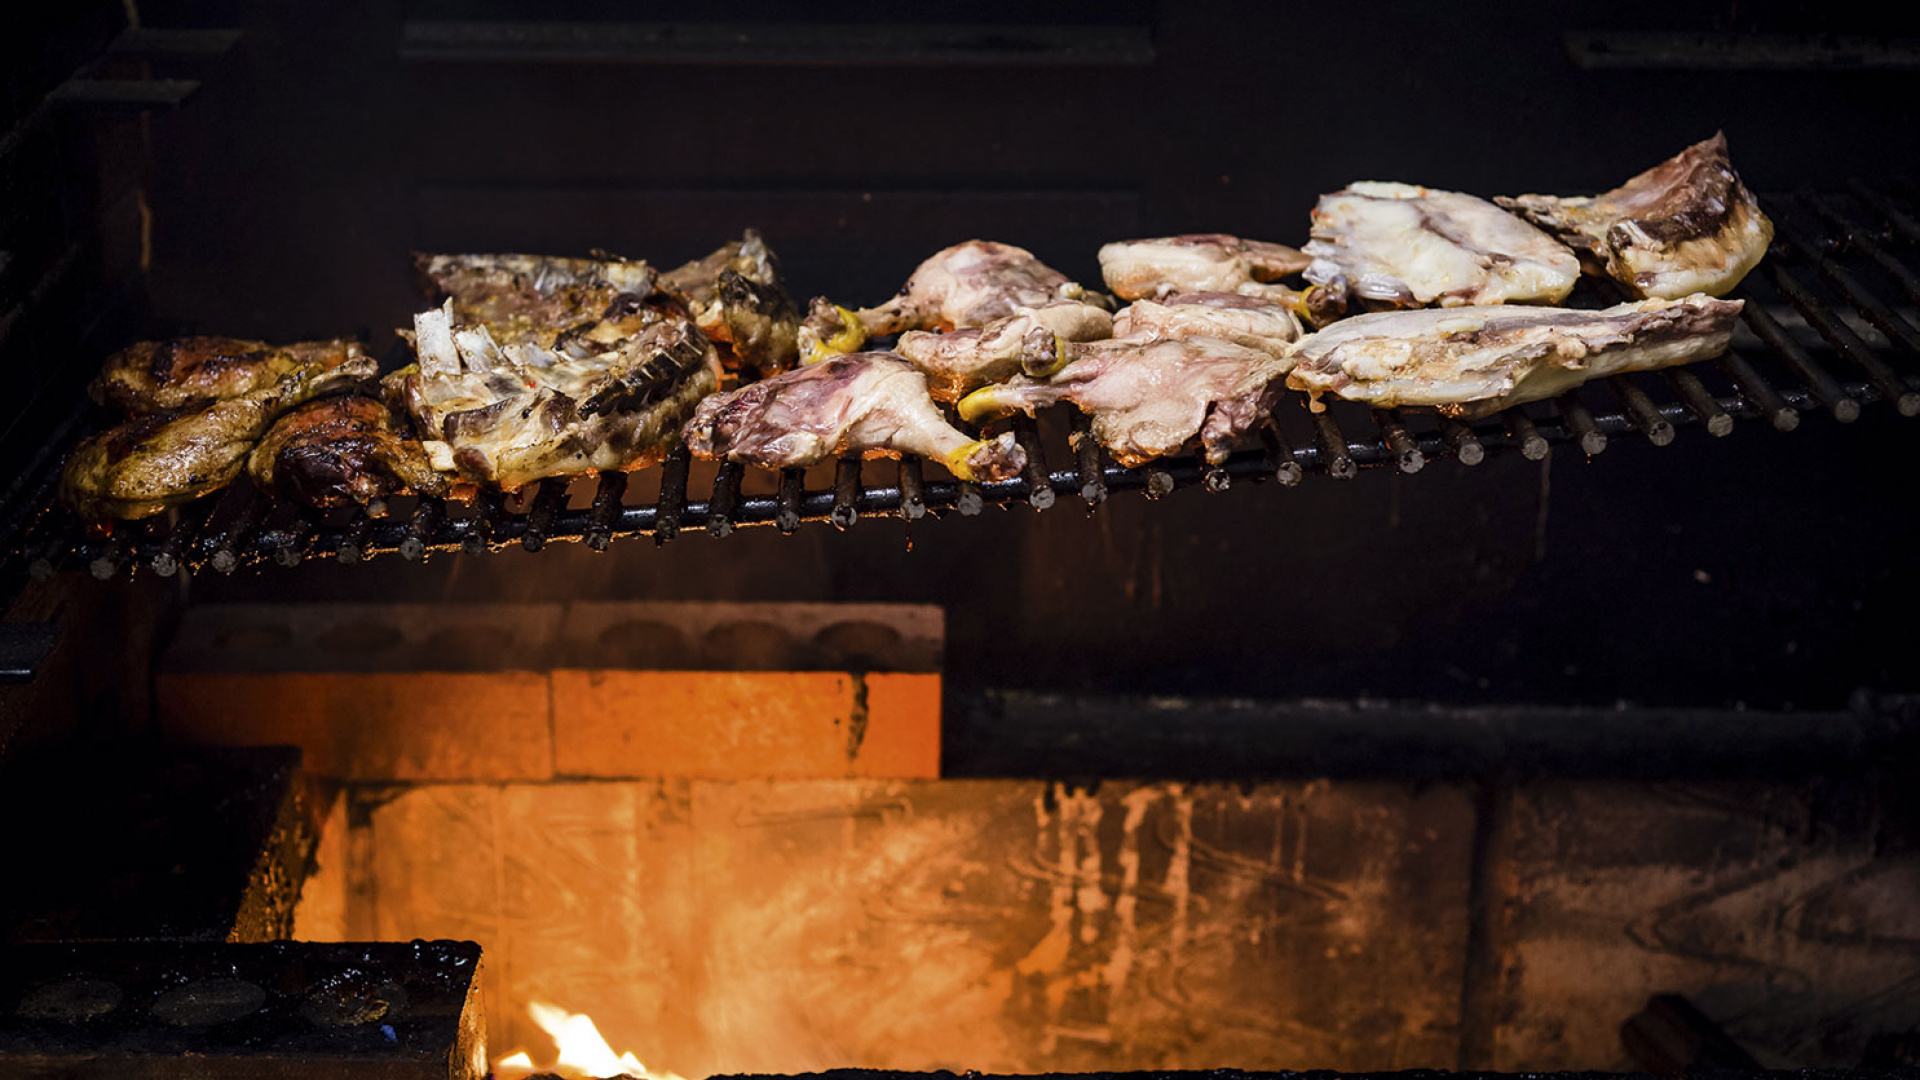 Goat on the grill at Smoking Goat